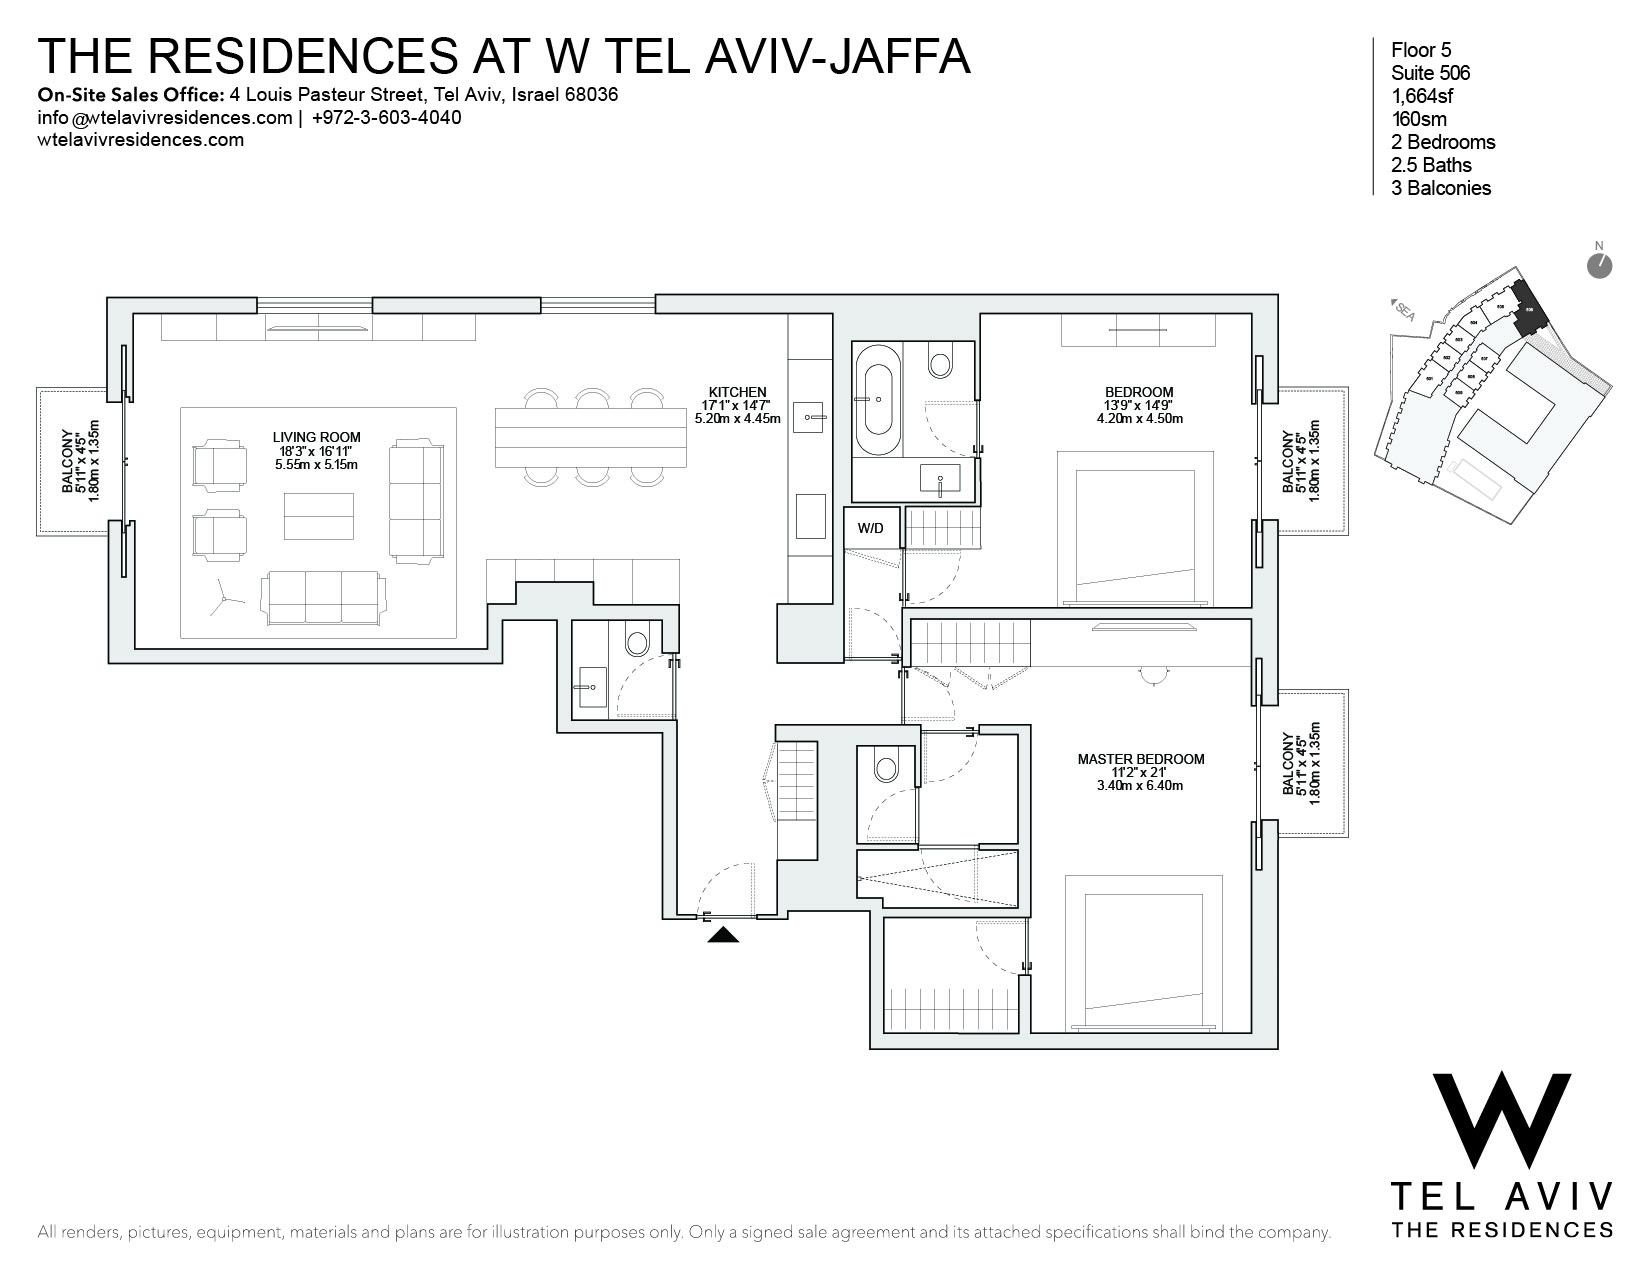 Appartement pour l Vente à W Tel Aviv Residences, 506 Luxury Apartment Tel Aviv, Israel 68036 Israël